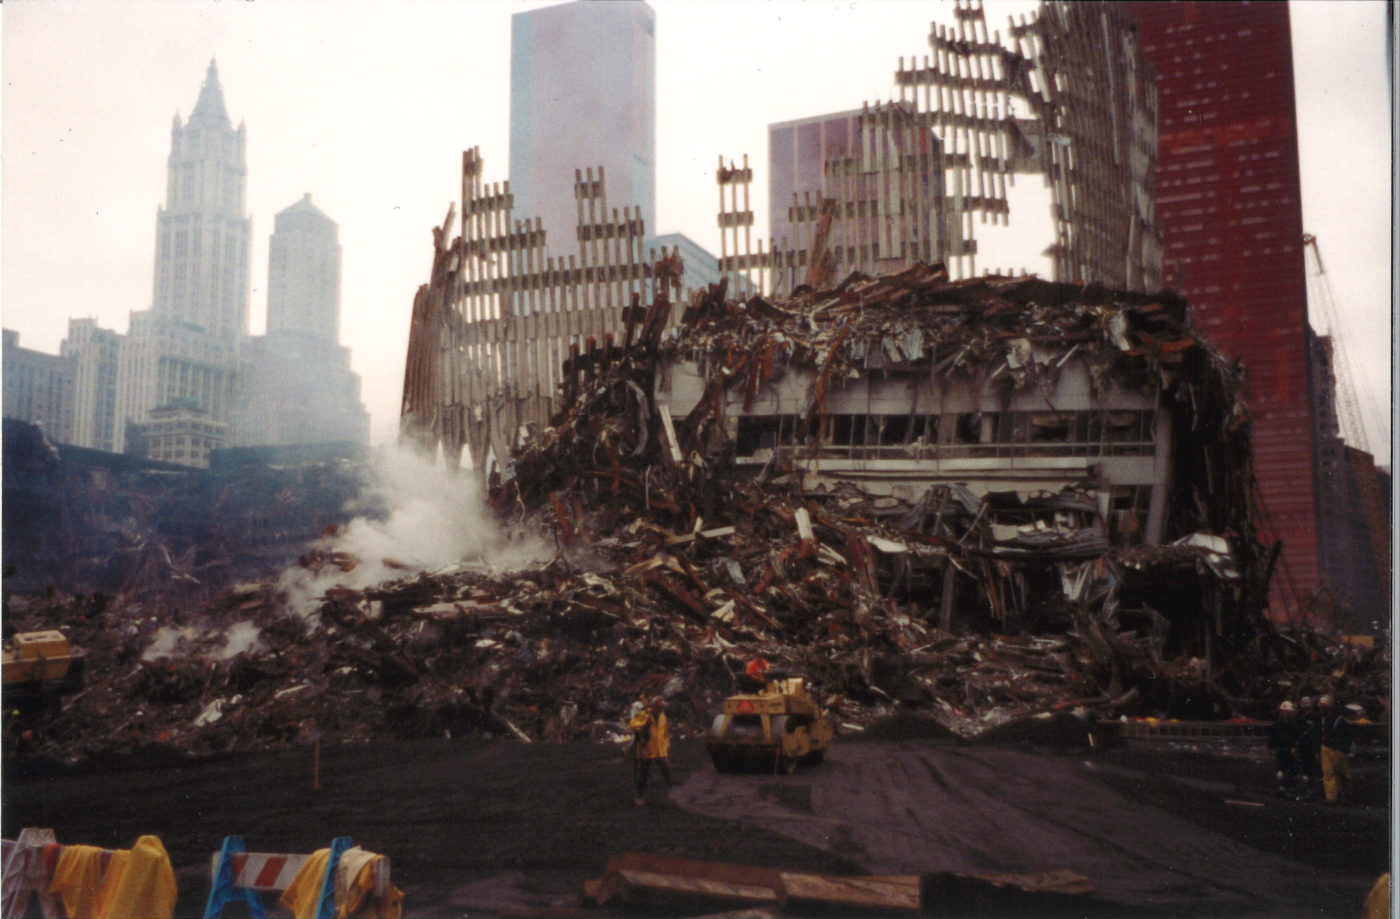 Work Continuing Around Falling Debris from WTC Structure